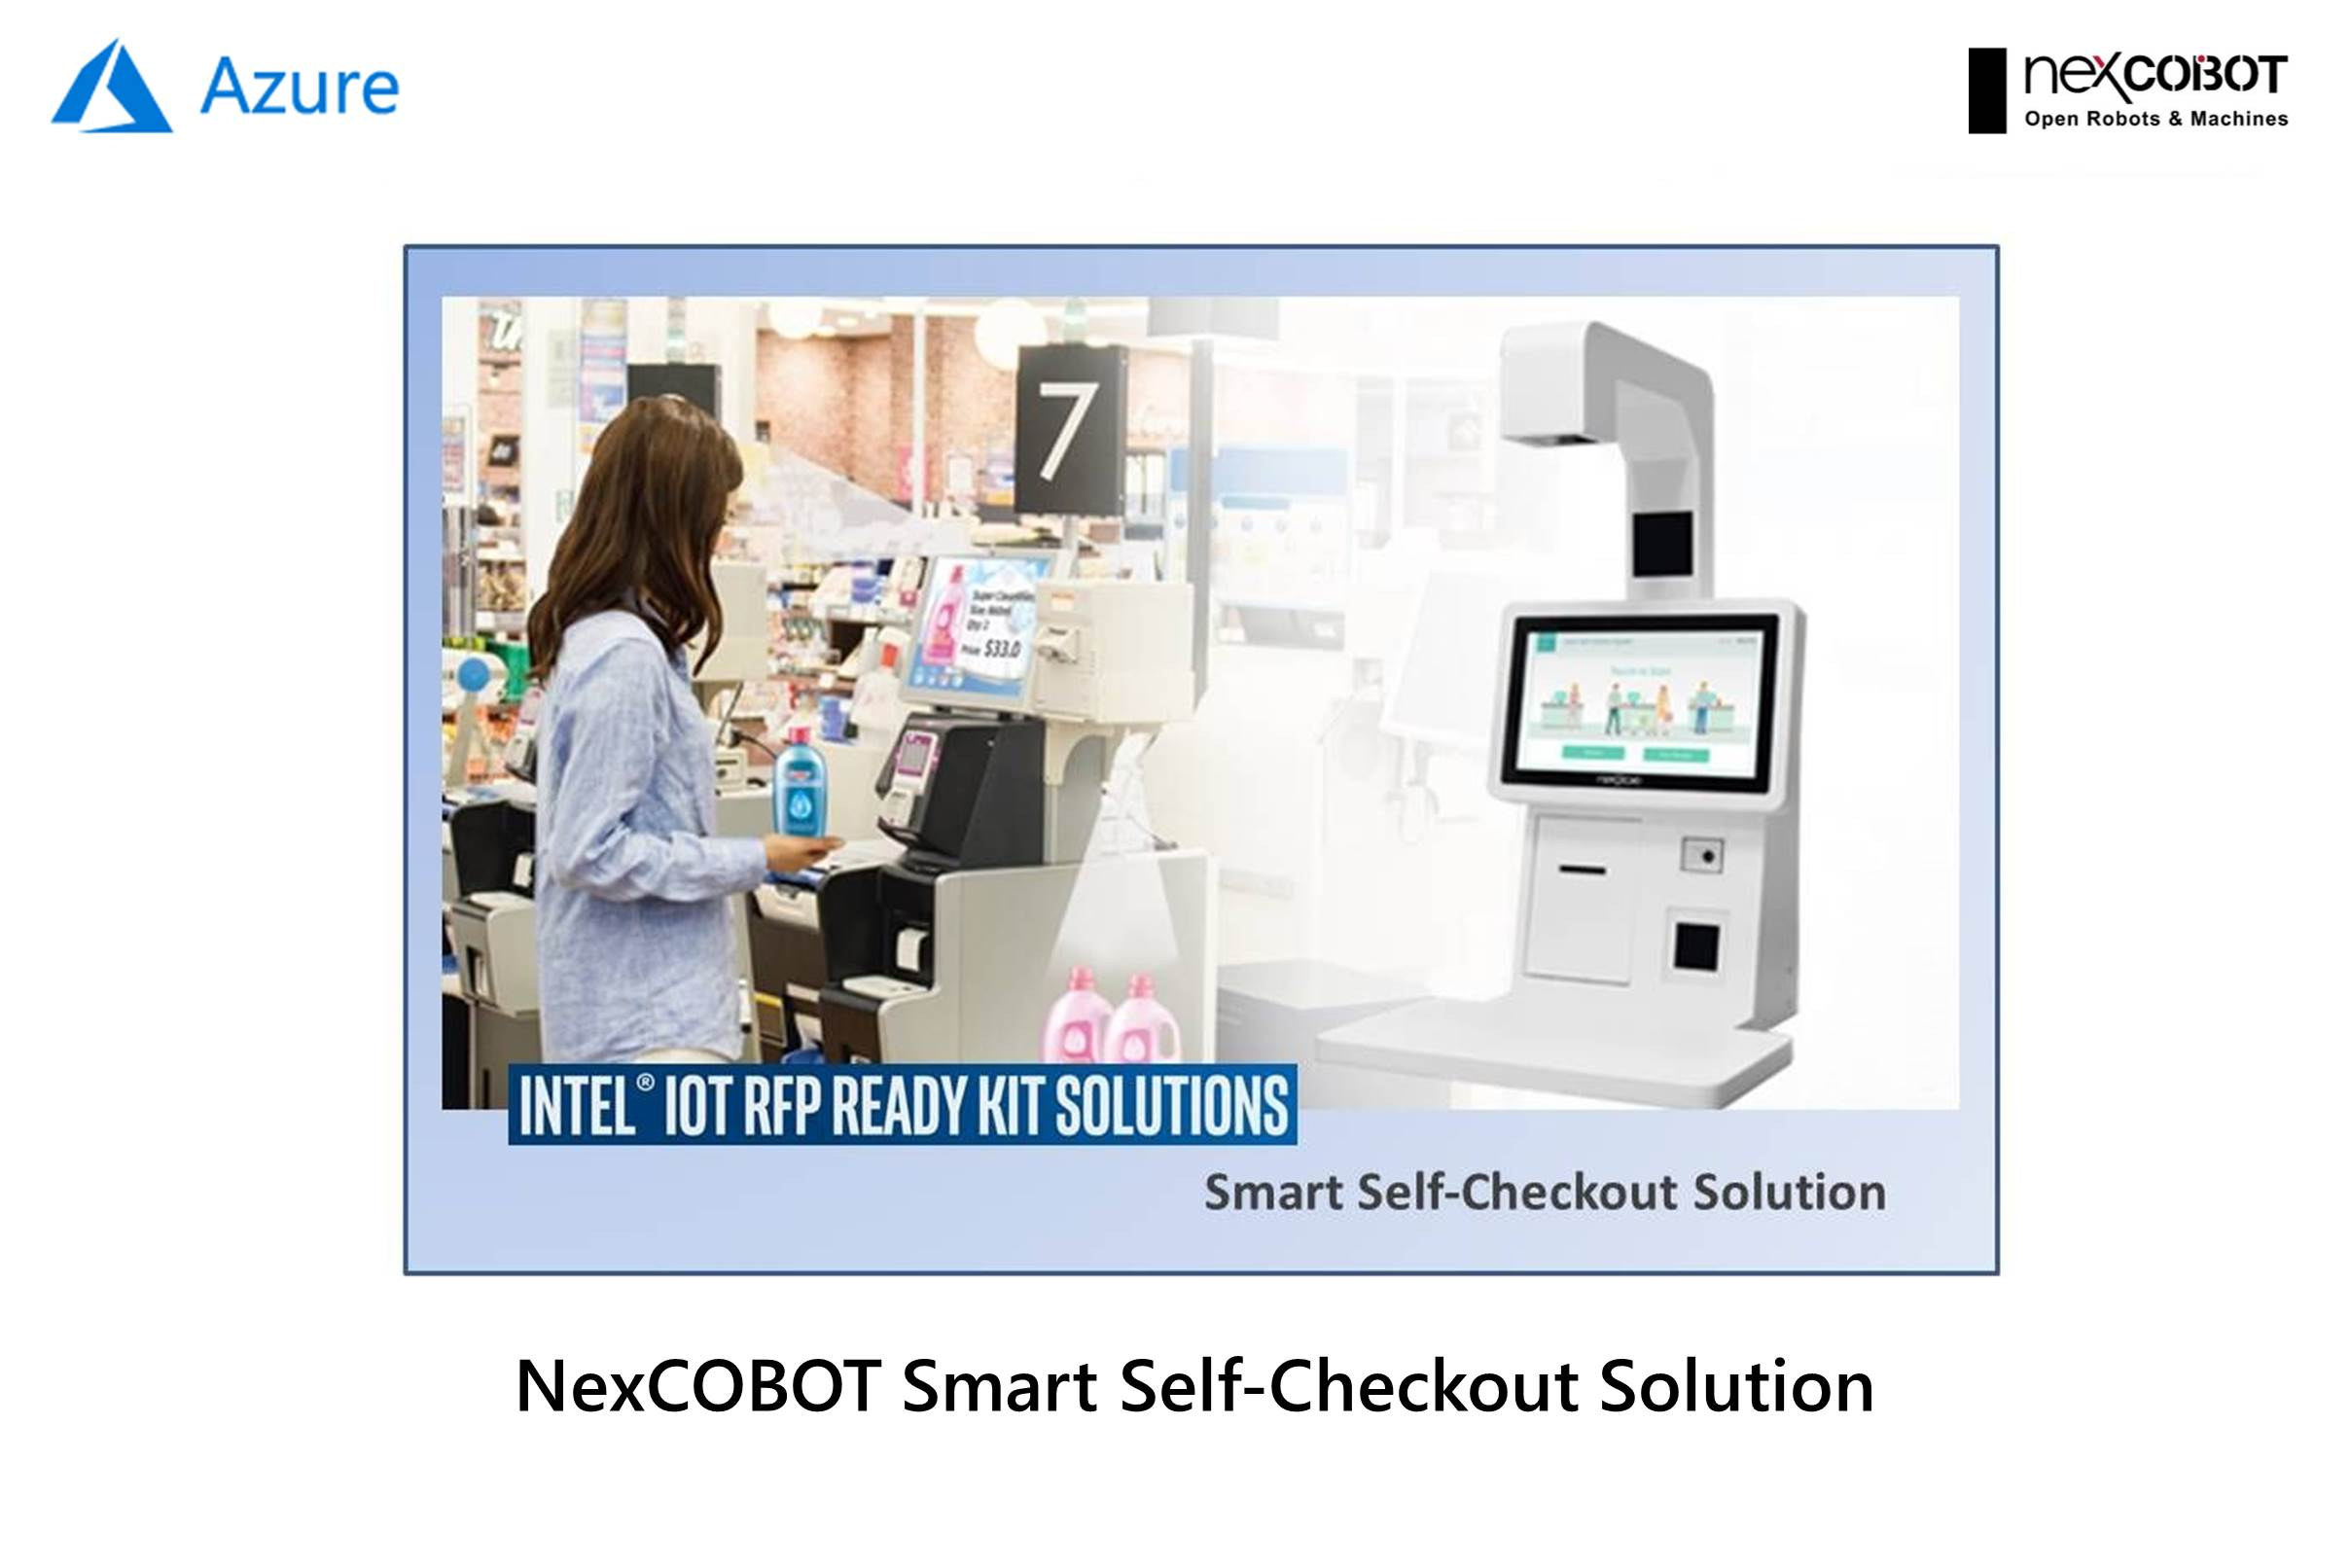 NexCOBOT Smart Self-Checkout Solution